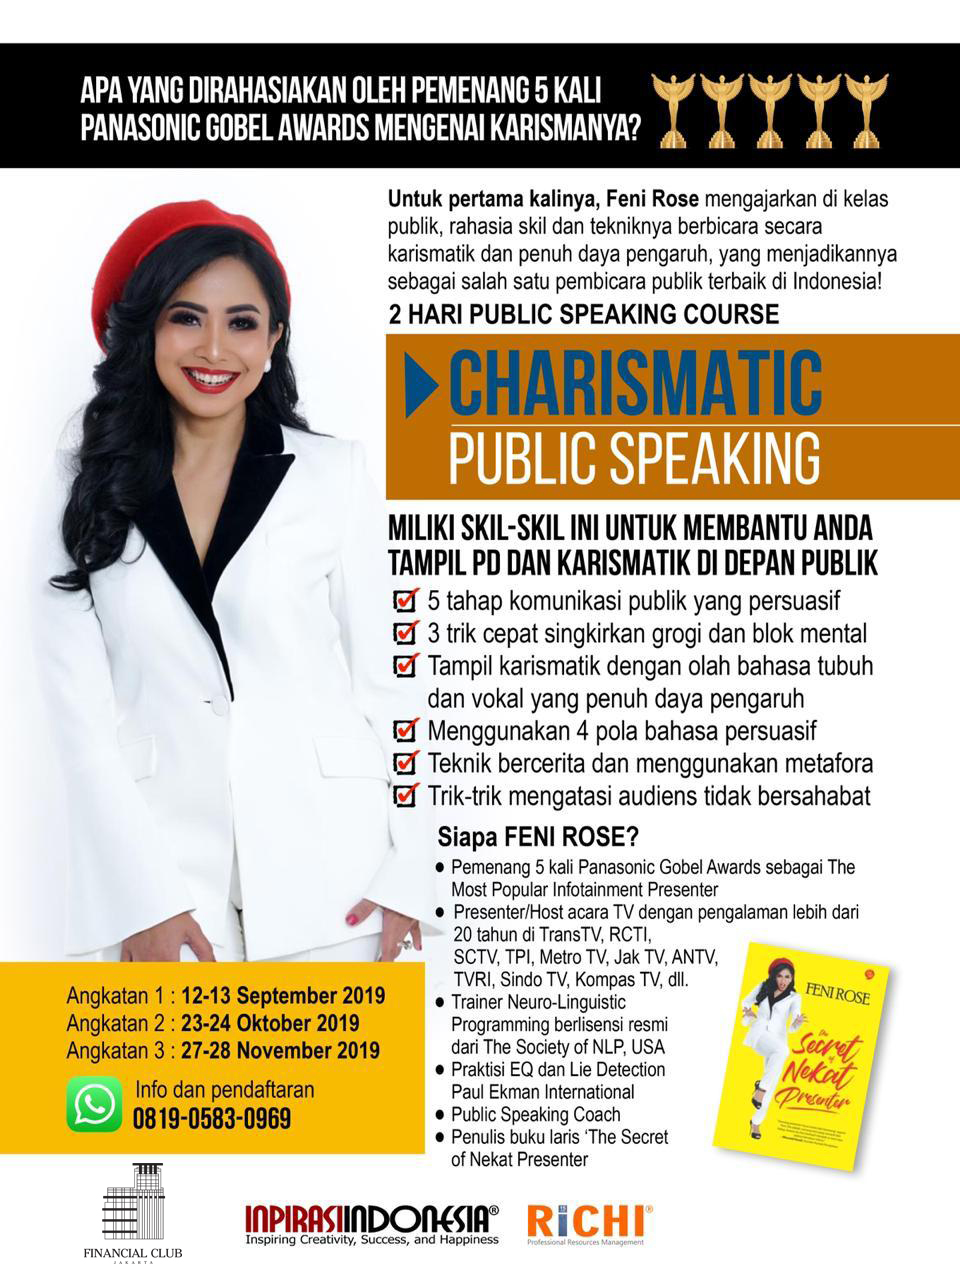 Charismatic Public Speaking with Feni Rose | September 12th - 13th, 2019